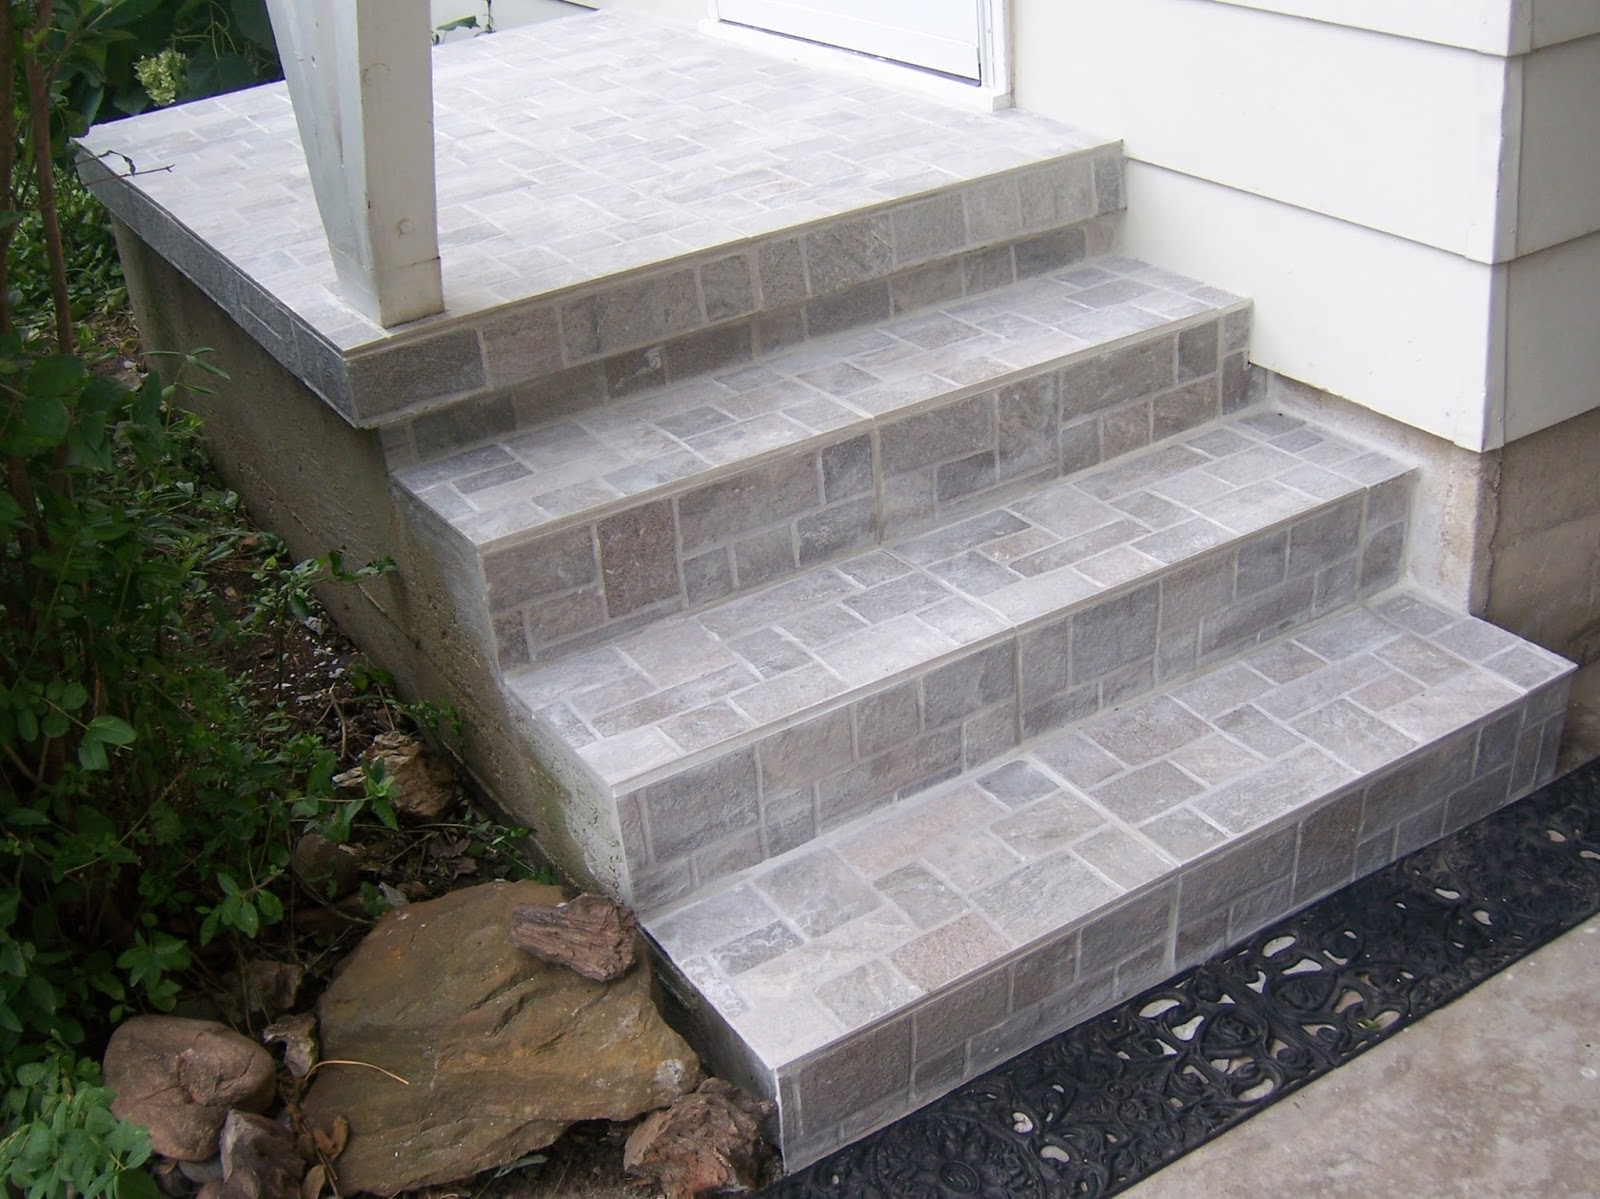 Family Tree How To Update Exterior Concrete Steps | Carpet Tiles For Steps